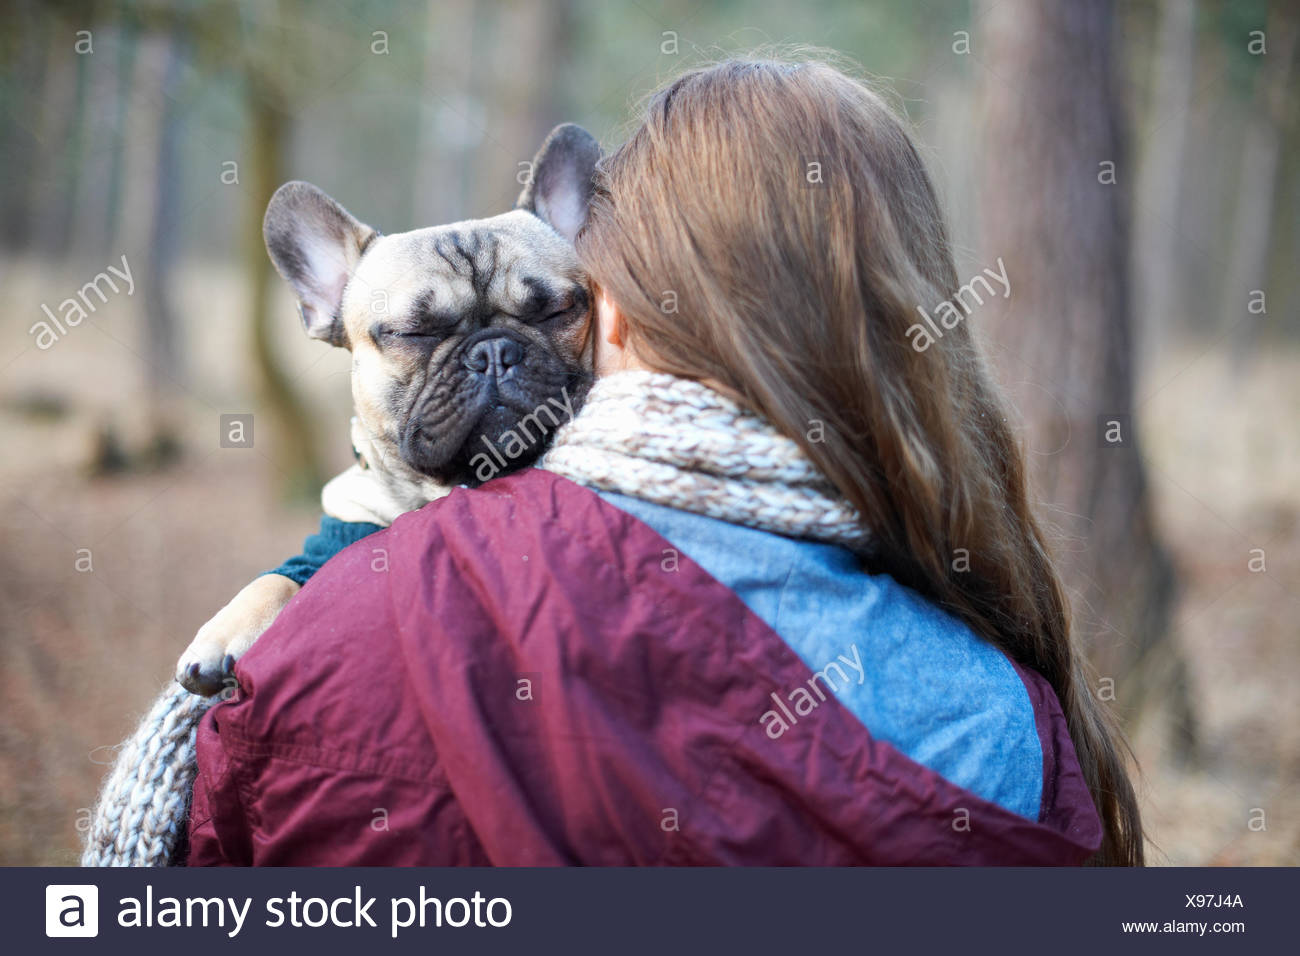 Portrait of cute dog being carried through forest by young woman - Stock Image